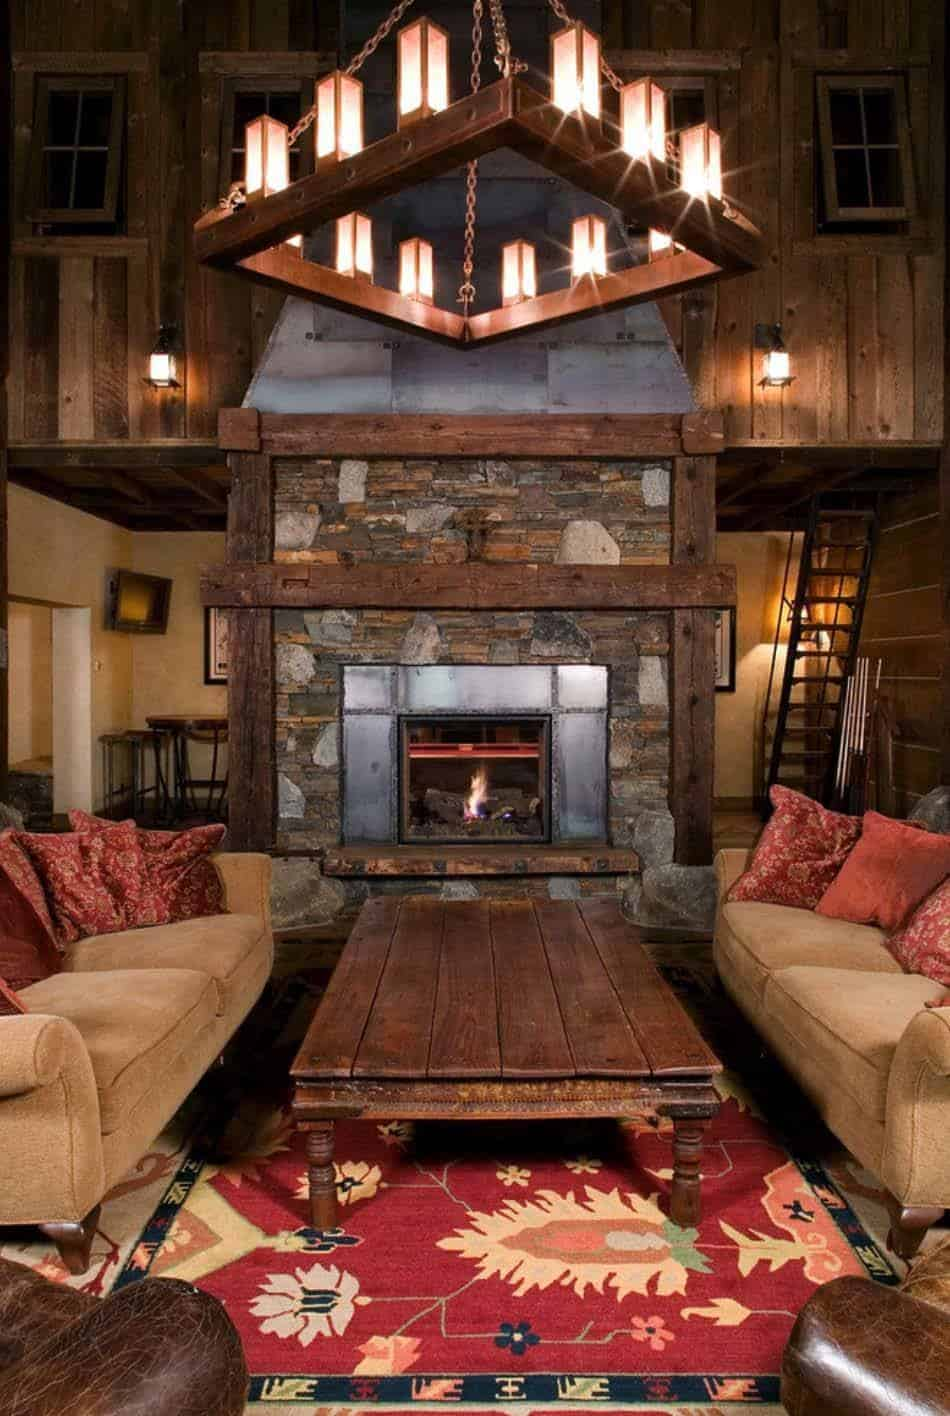 Cozy Fireplace Ideas-41-1 Kindesign